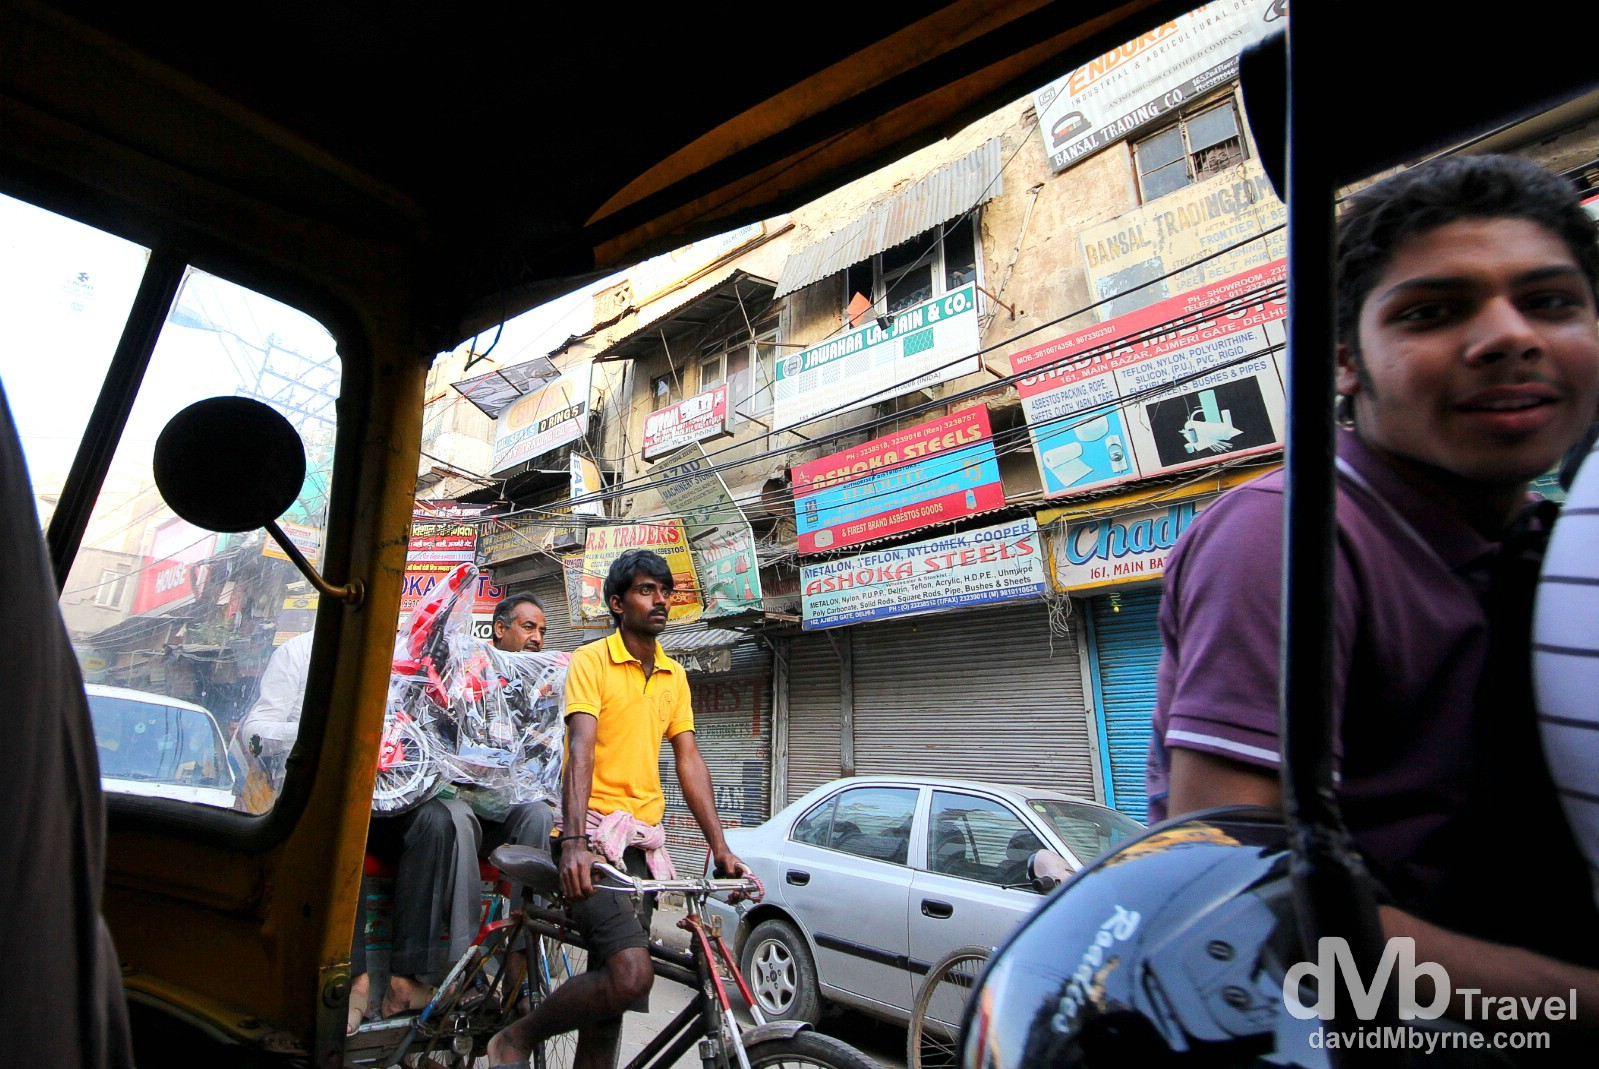 Tut tuk views on the streets of Old Delhi, Delhi, India. October 7th 2012.